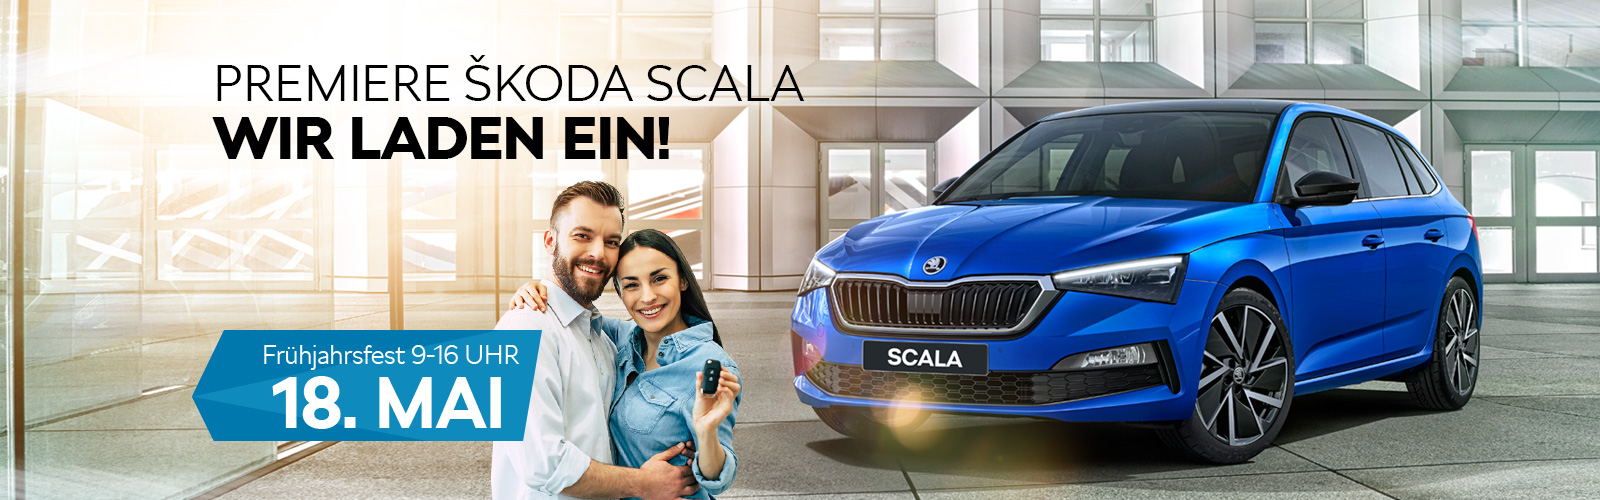 Premiere Skoda Scala - Skodamueller Background